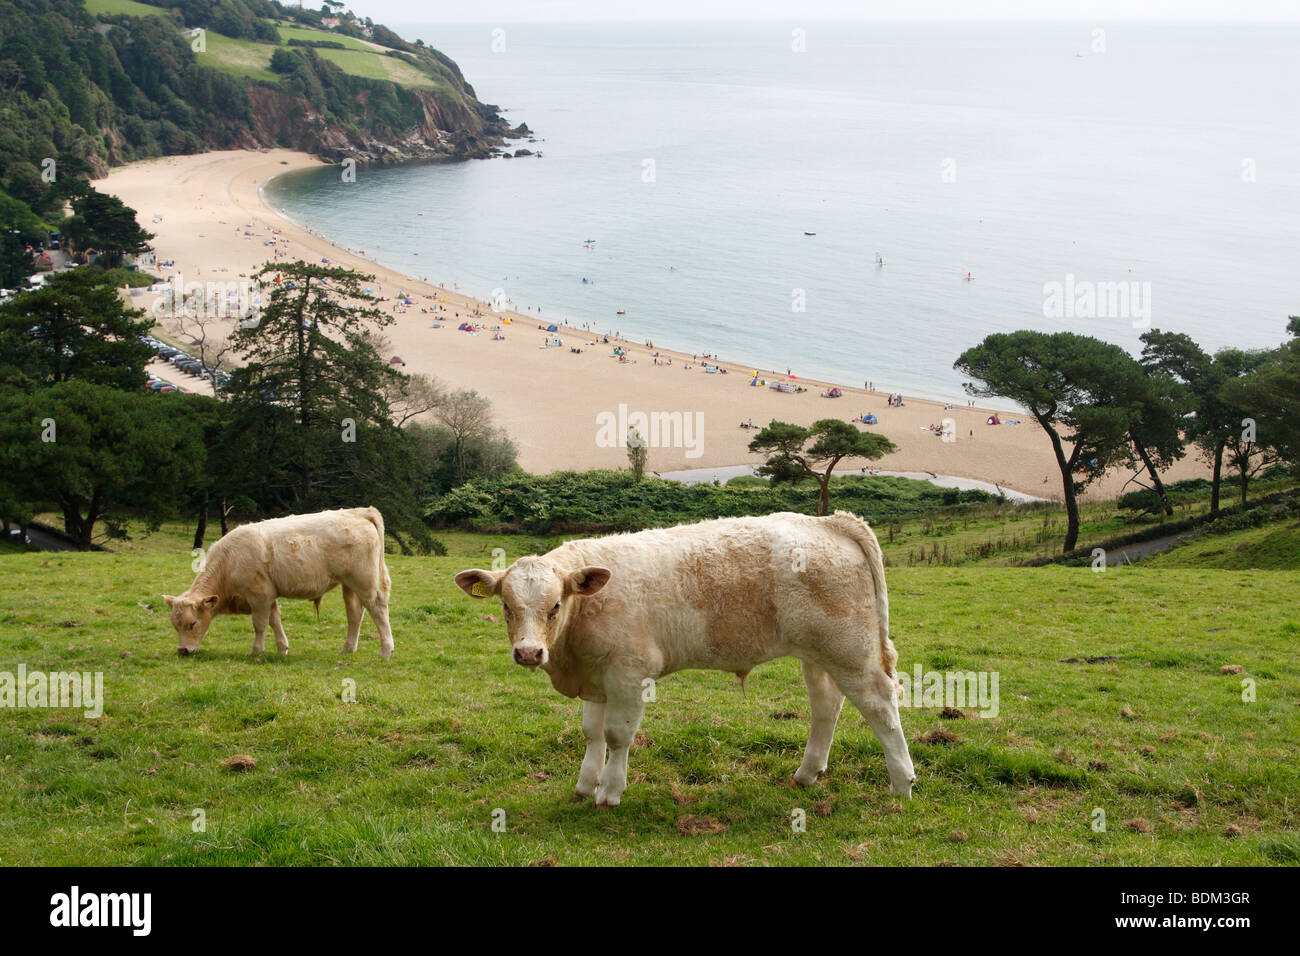 'Blackpool Sands' and grazing cows, Devon, England, UK - Stock Image